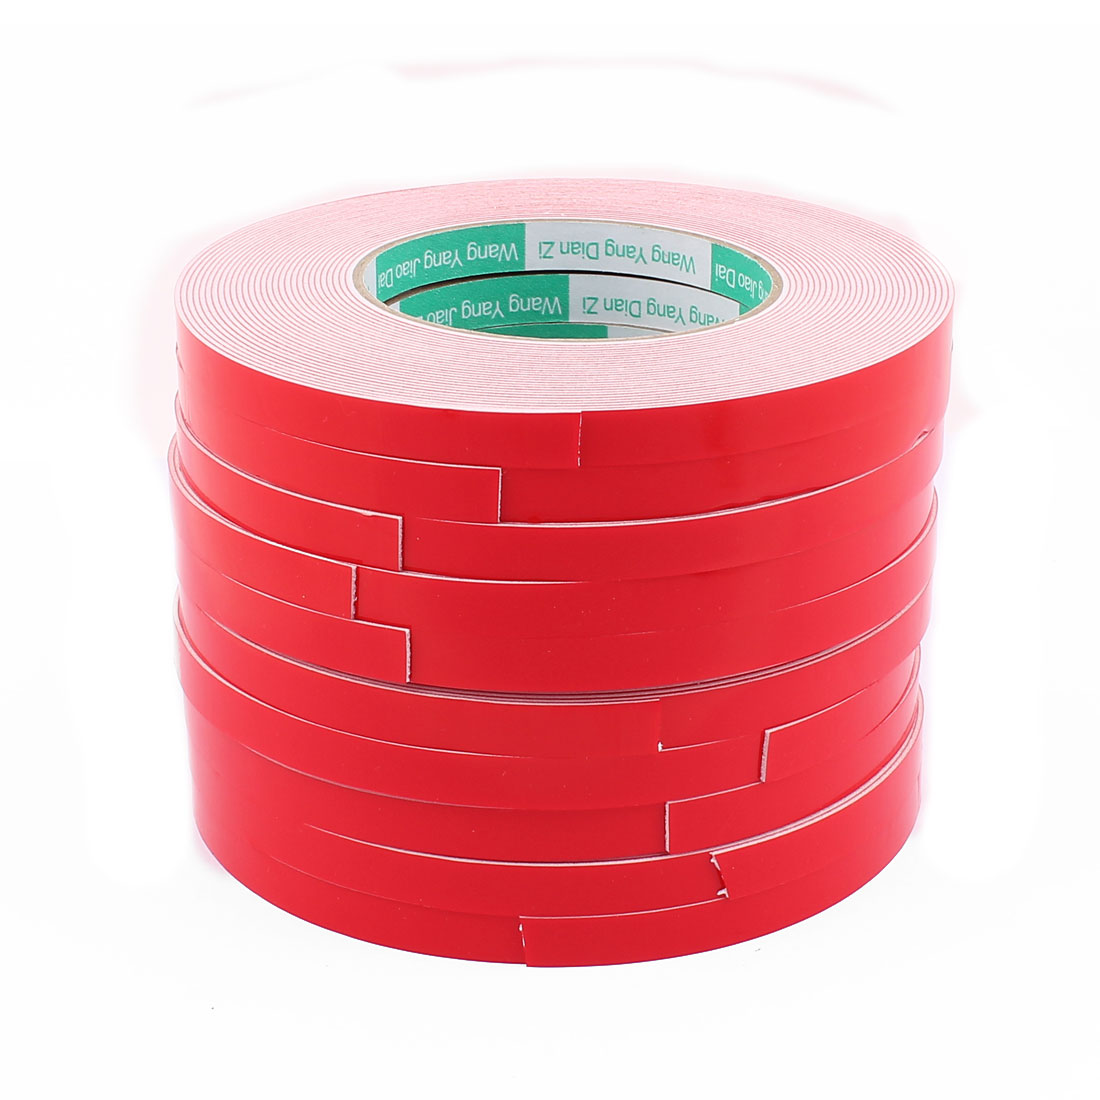 10PCS 1CM Width 10M Long 1MM Thick White Dual Sided Waterproof Sponge Tape for Car